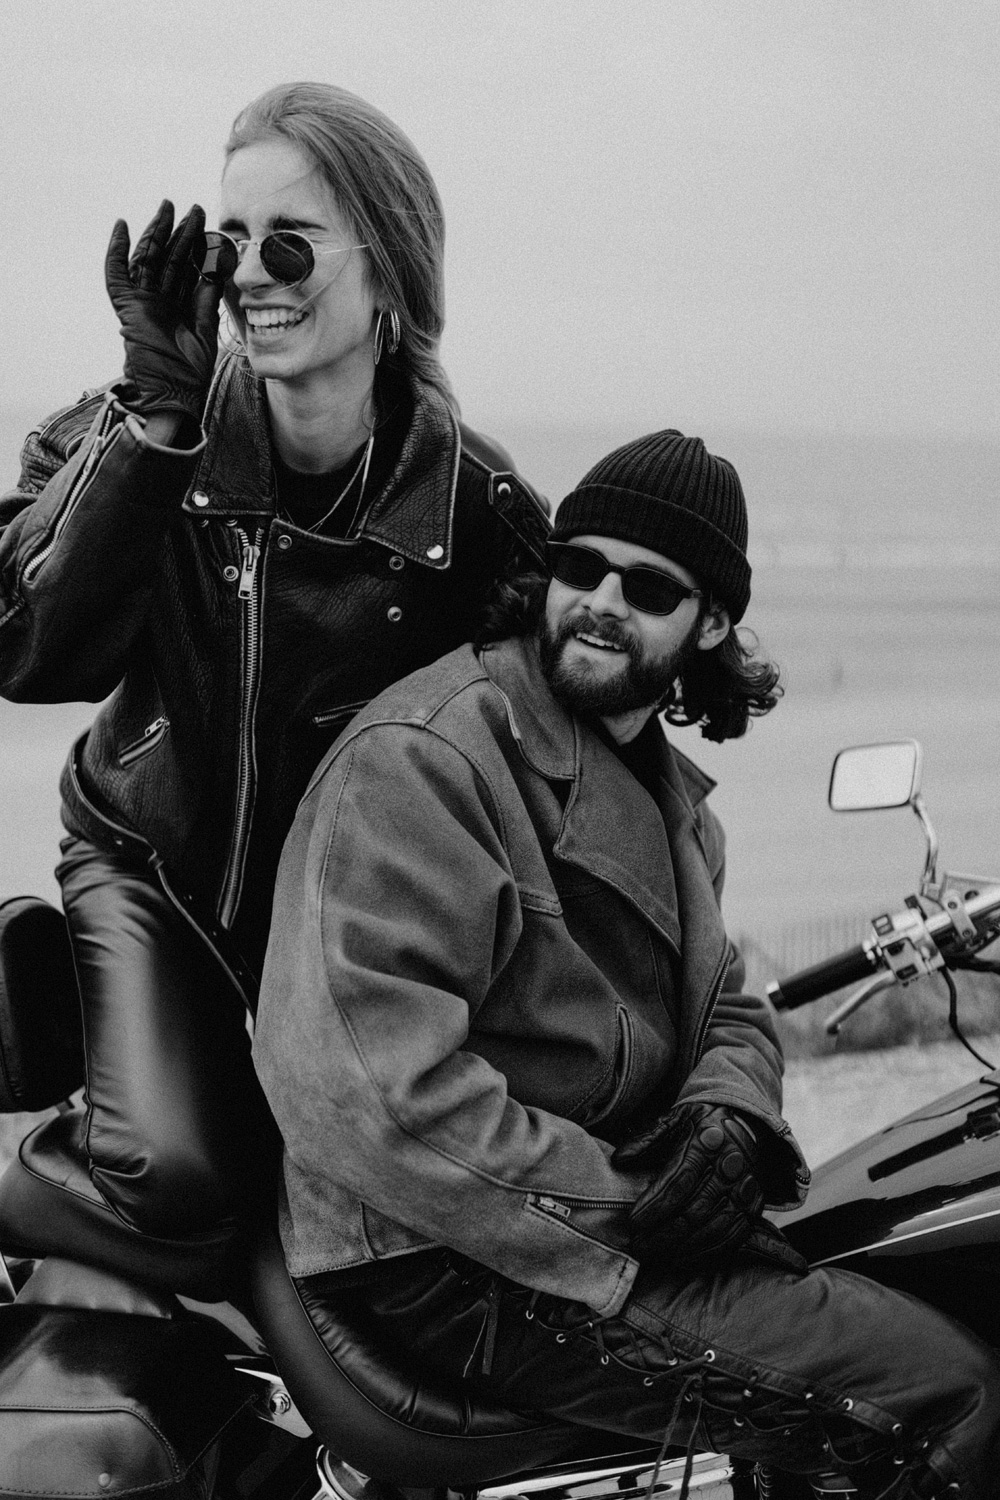 Biker couple sitting on motorbike smiling